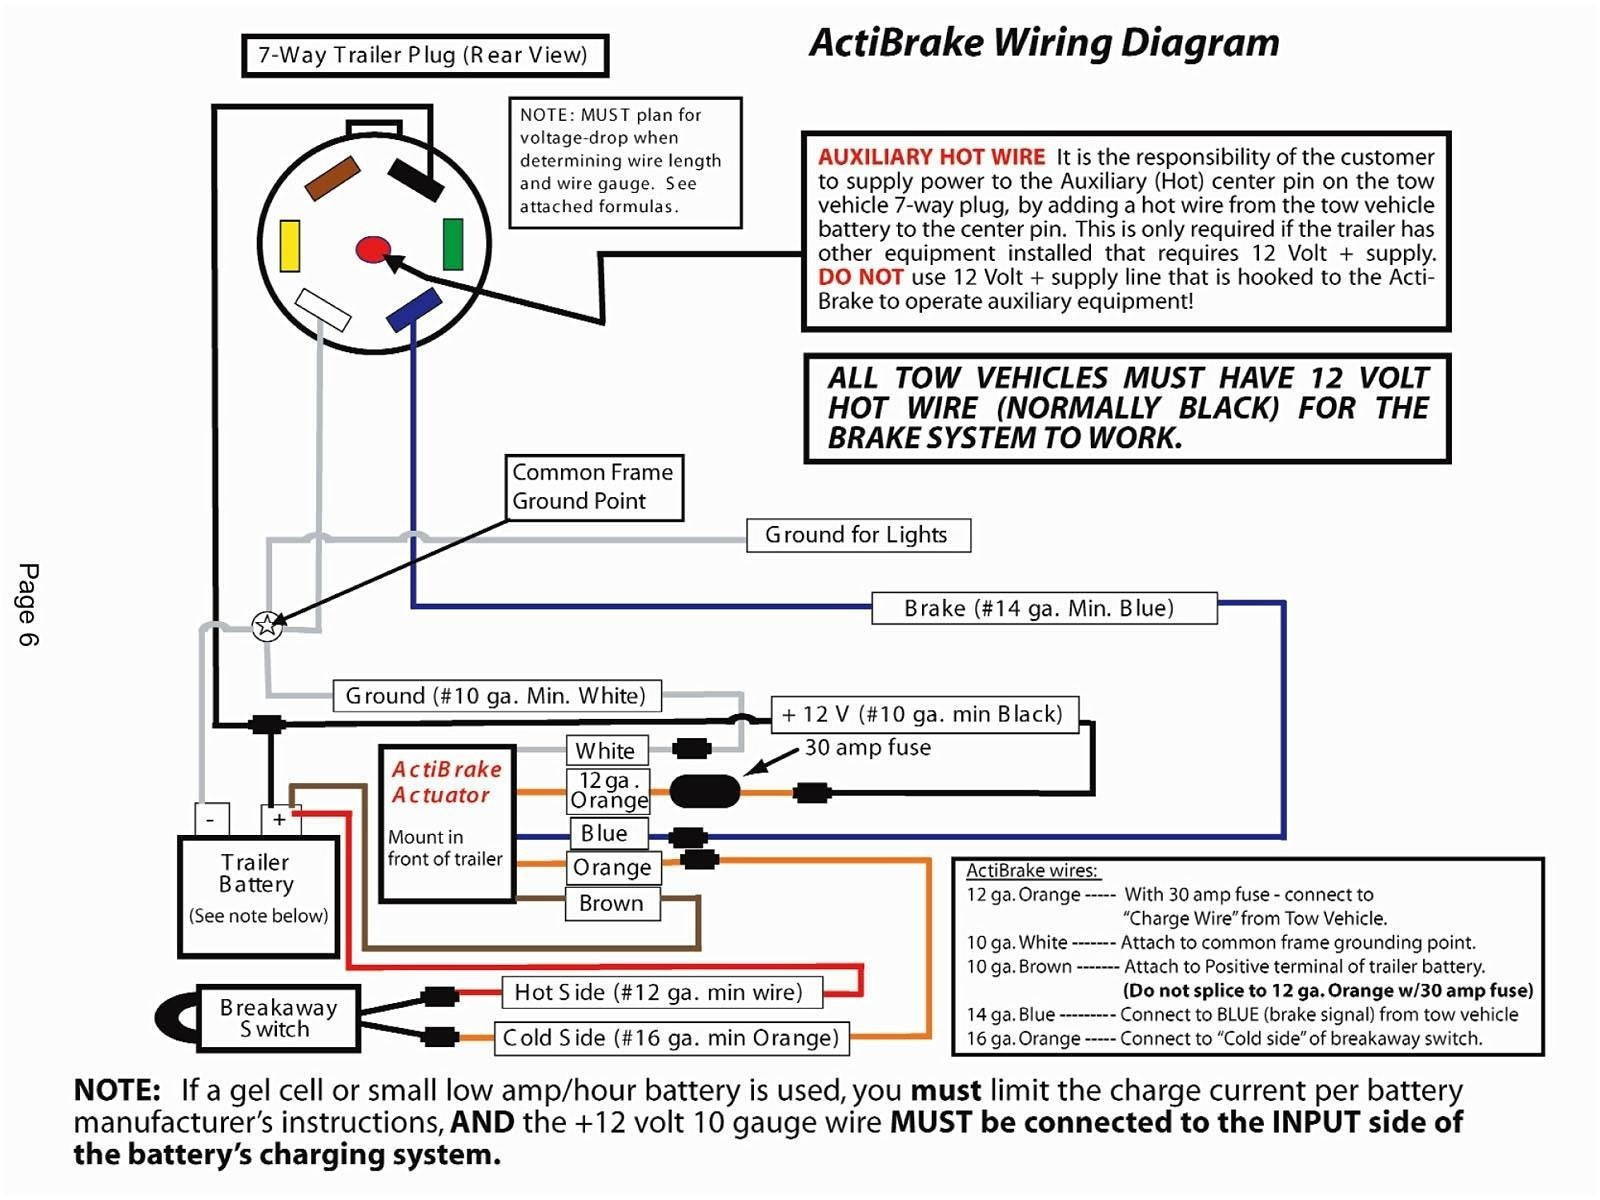 7 Pin Plug Wiring Diagram Fresh Wiring Diagram Trailer Plug - Wiring Diagram For Trailer Lights Australia